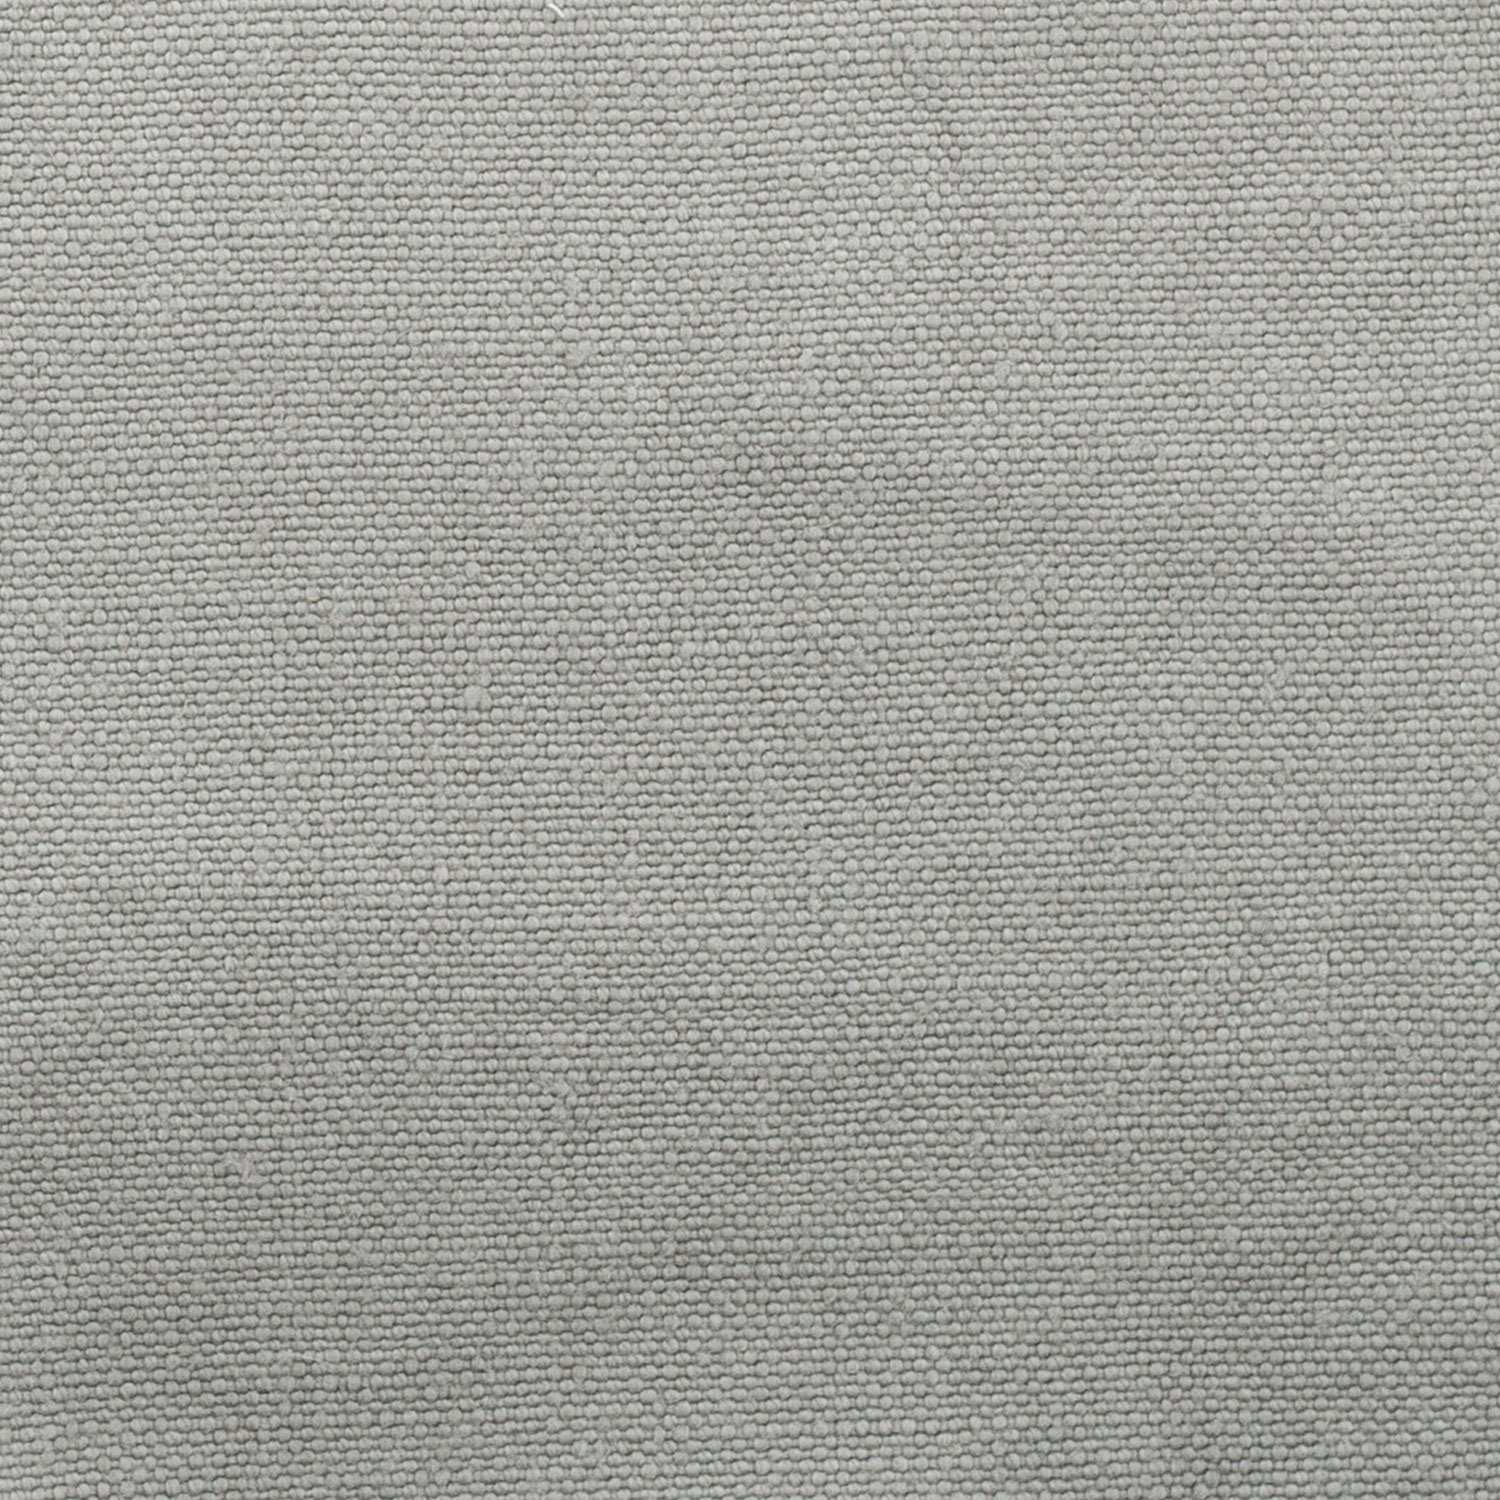 Plain, Cunky Stonewashed Linen Seamist